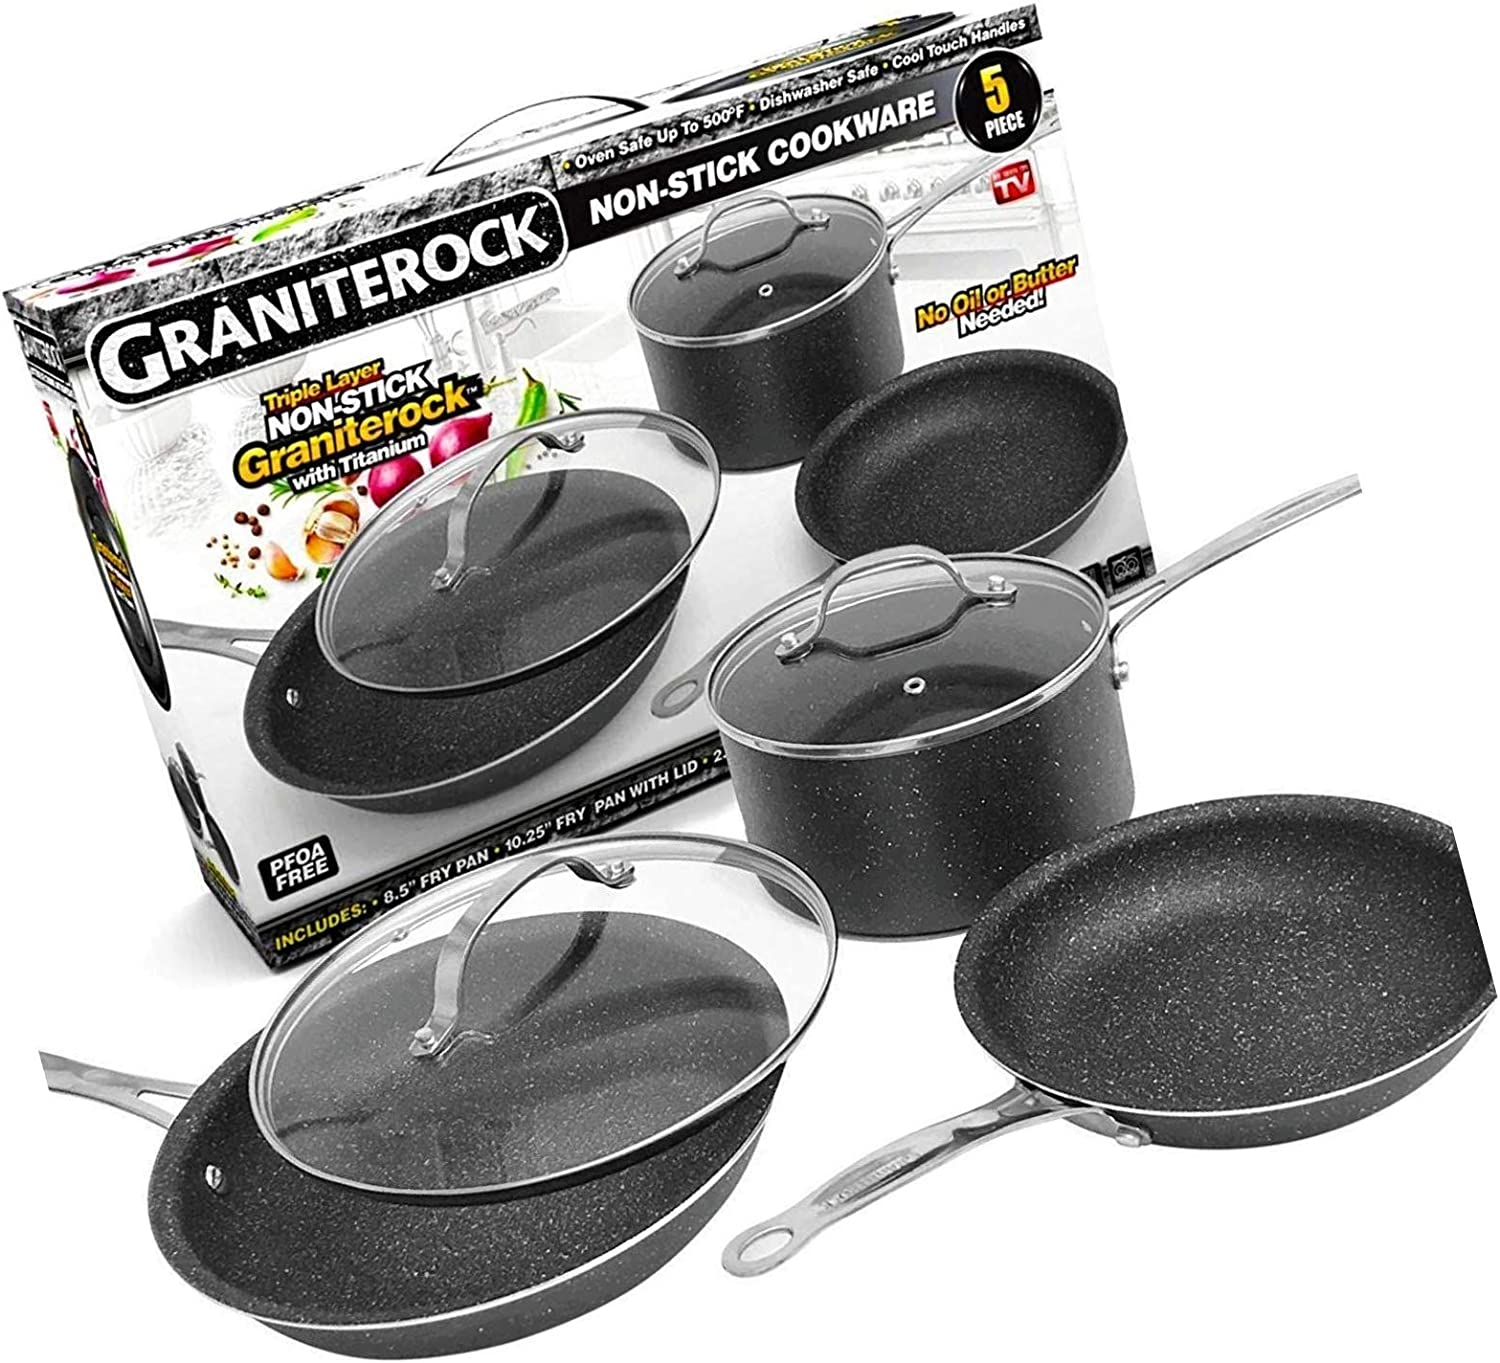 Amazon Com Nonstick 5 Piece Kitchen Cookware Set As Seen On Tv Granite Rock Ultimate Neew Kitchen Dining